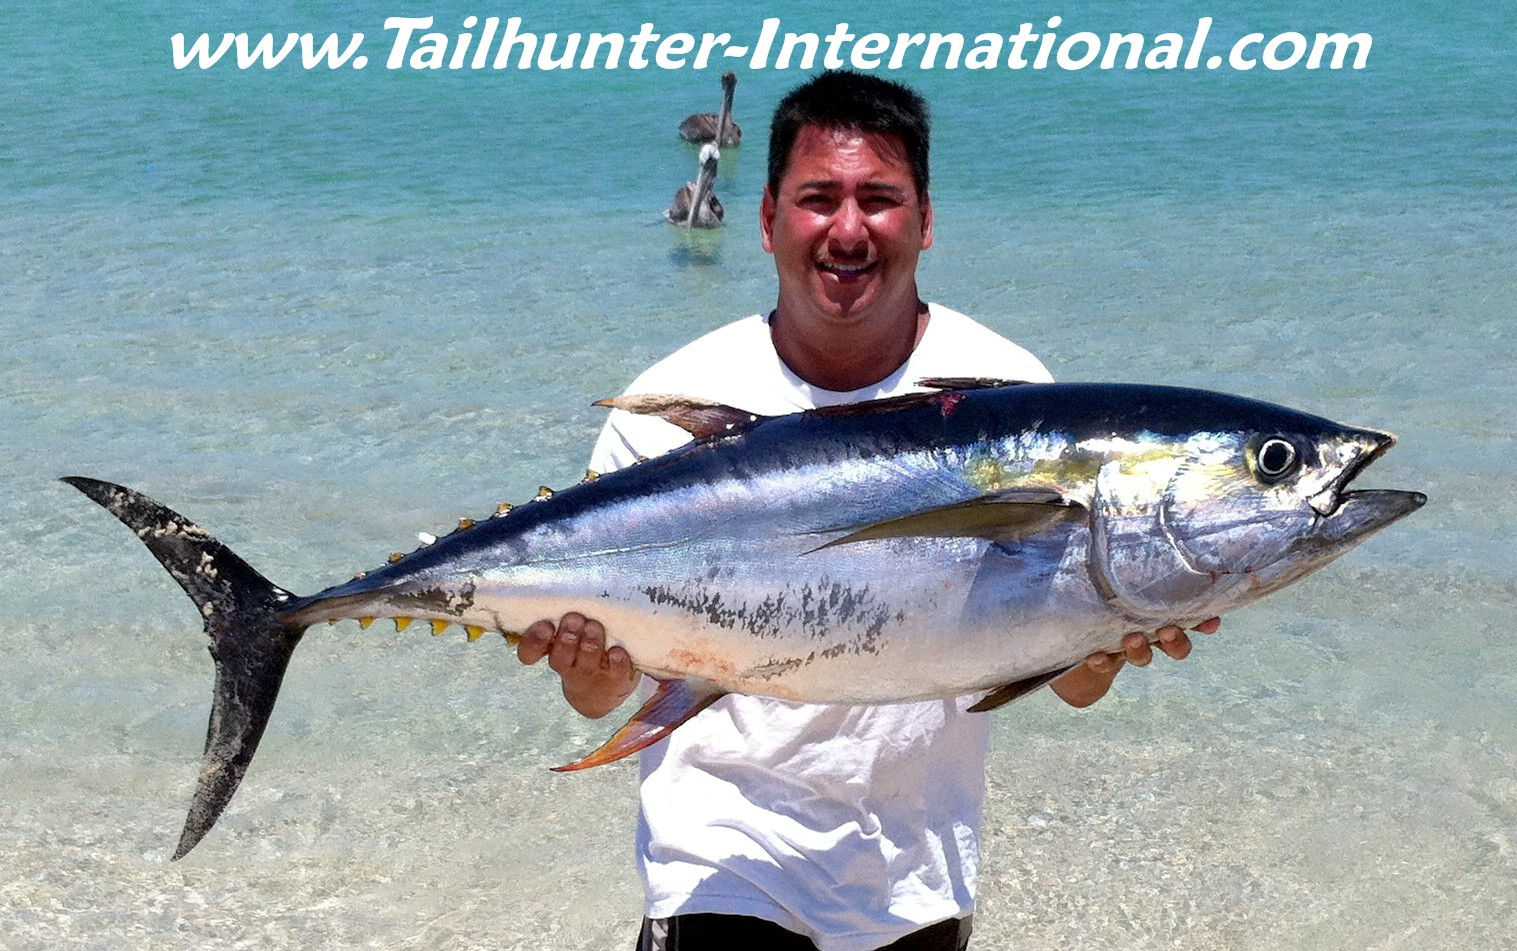 La paz las arenas fishing report from tailhunter for What does a tuna fish look like